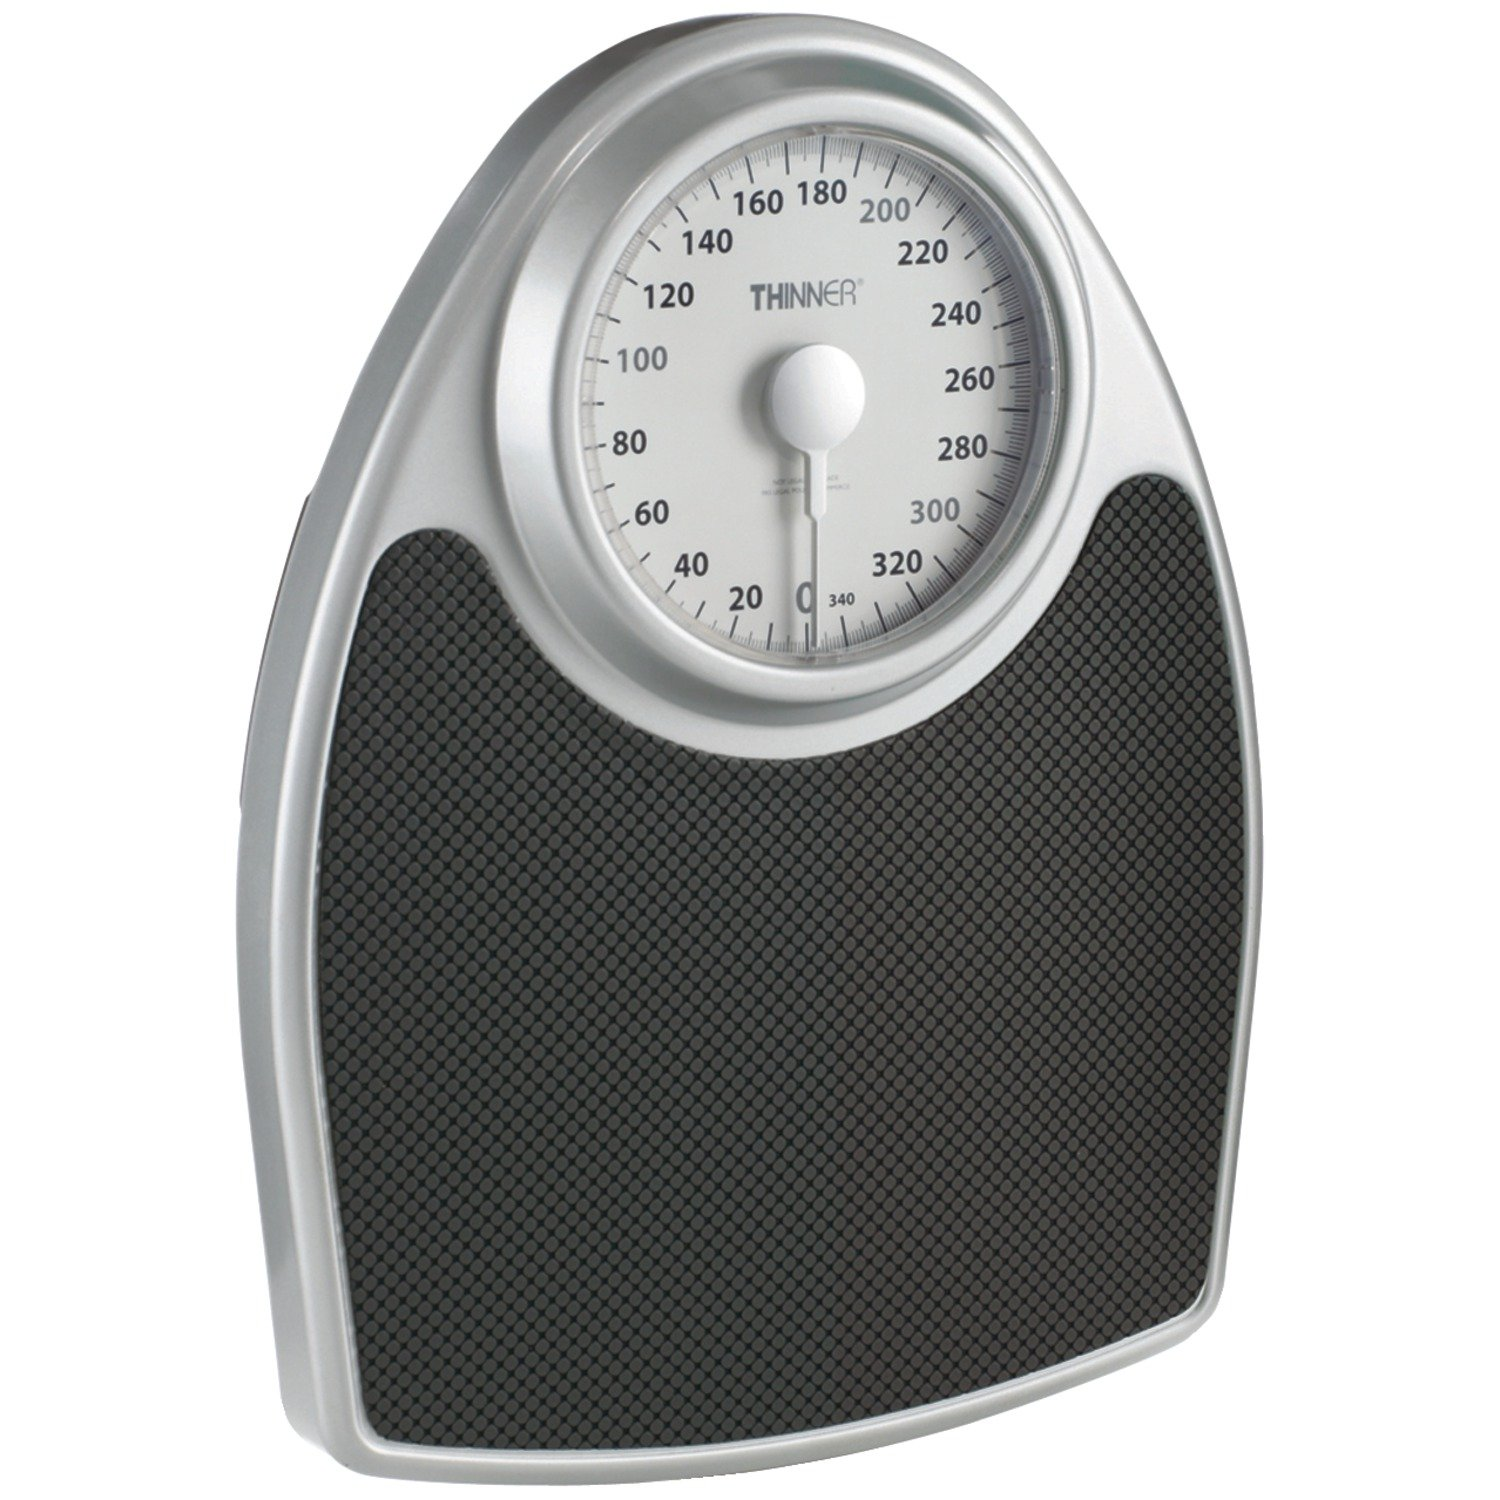 Amazoncom Conair ExtraLarge Dial Analog Precision Scale Health - Digital vs analog bathroom scale